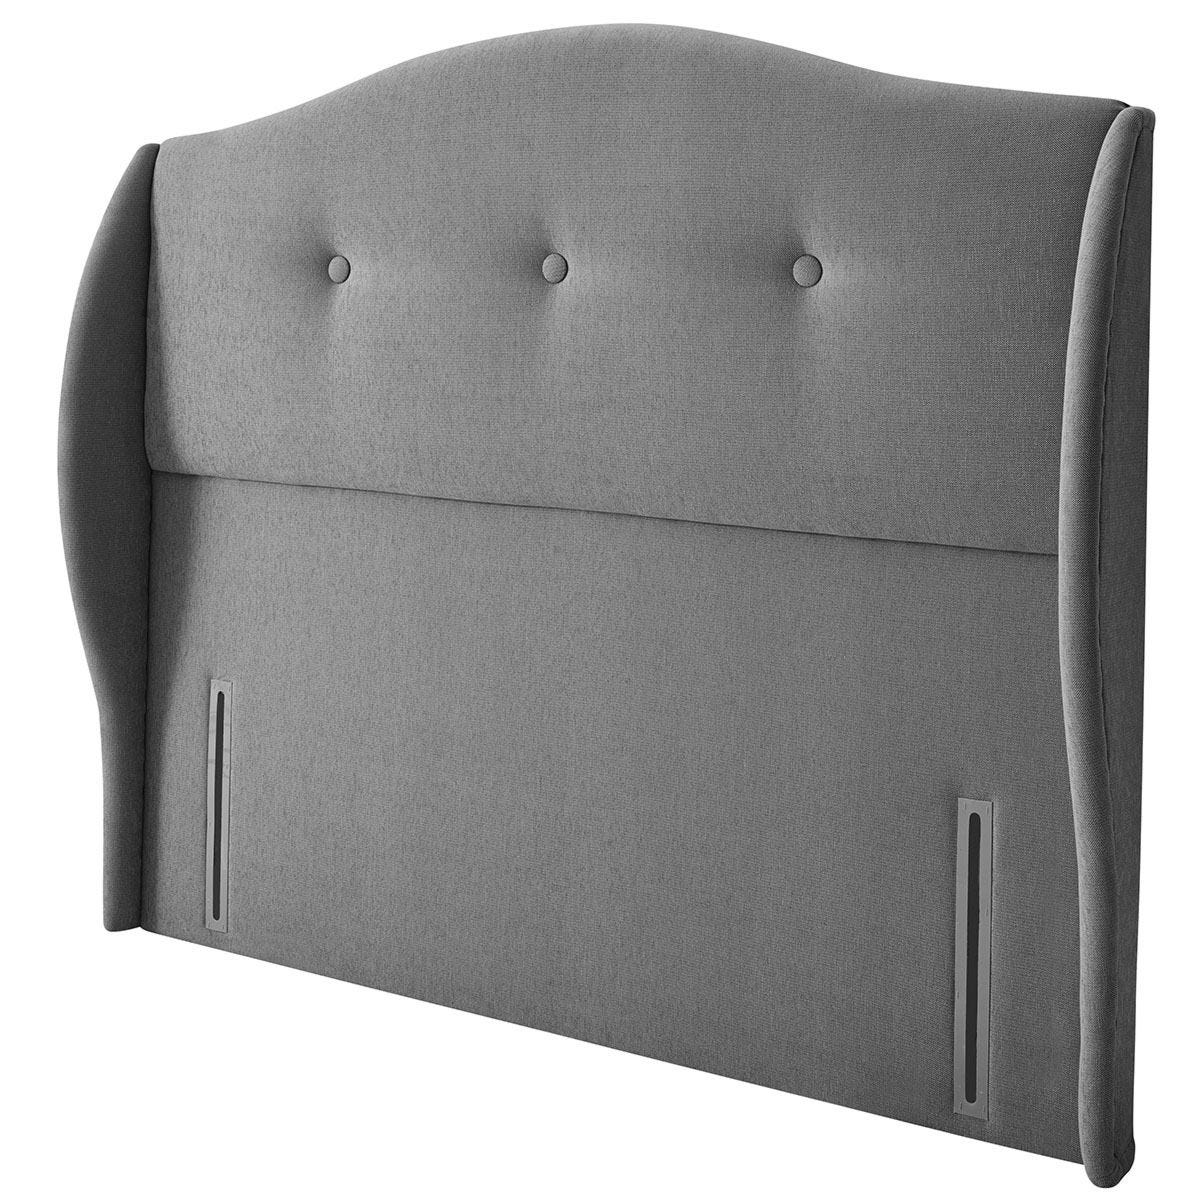 Silentnight Camden Grey Headboard - Super King